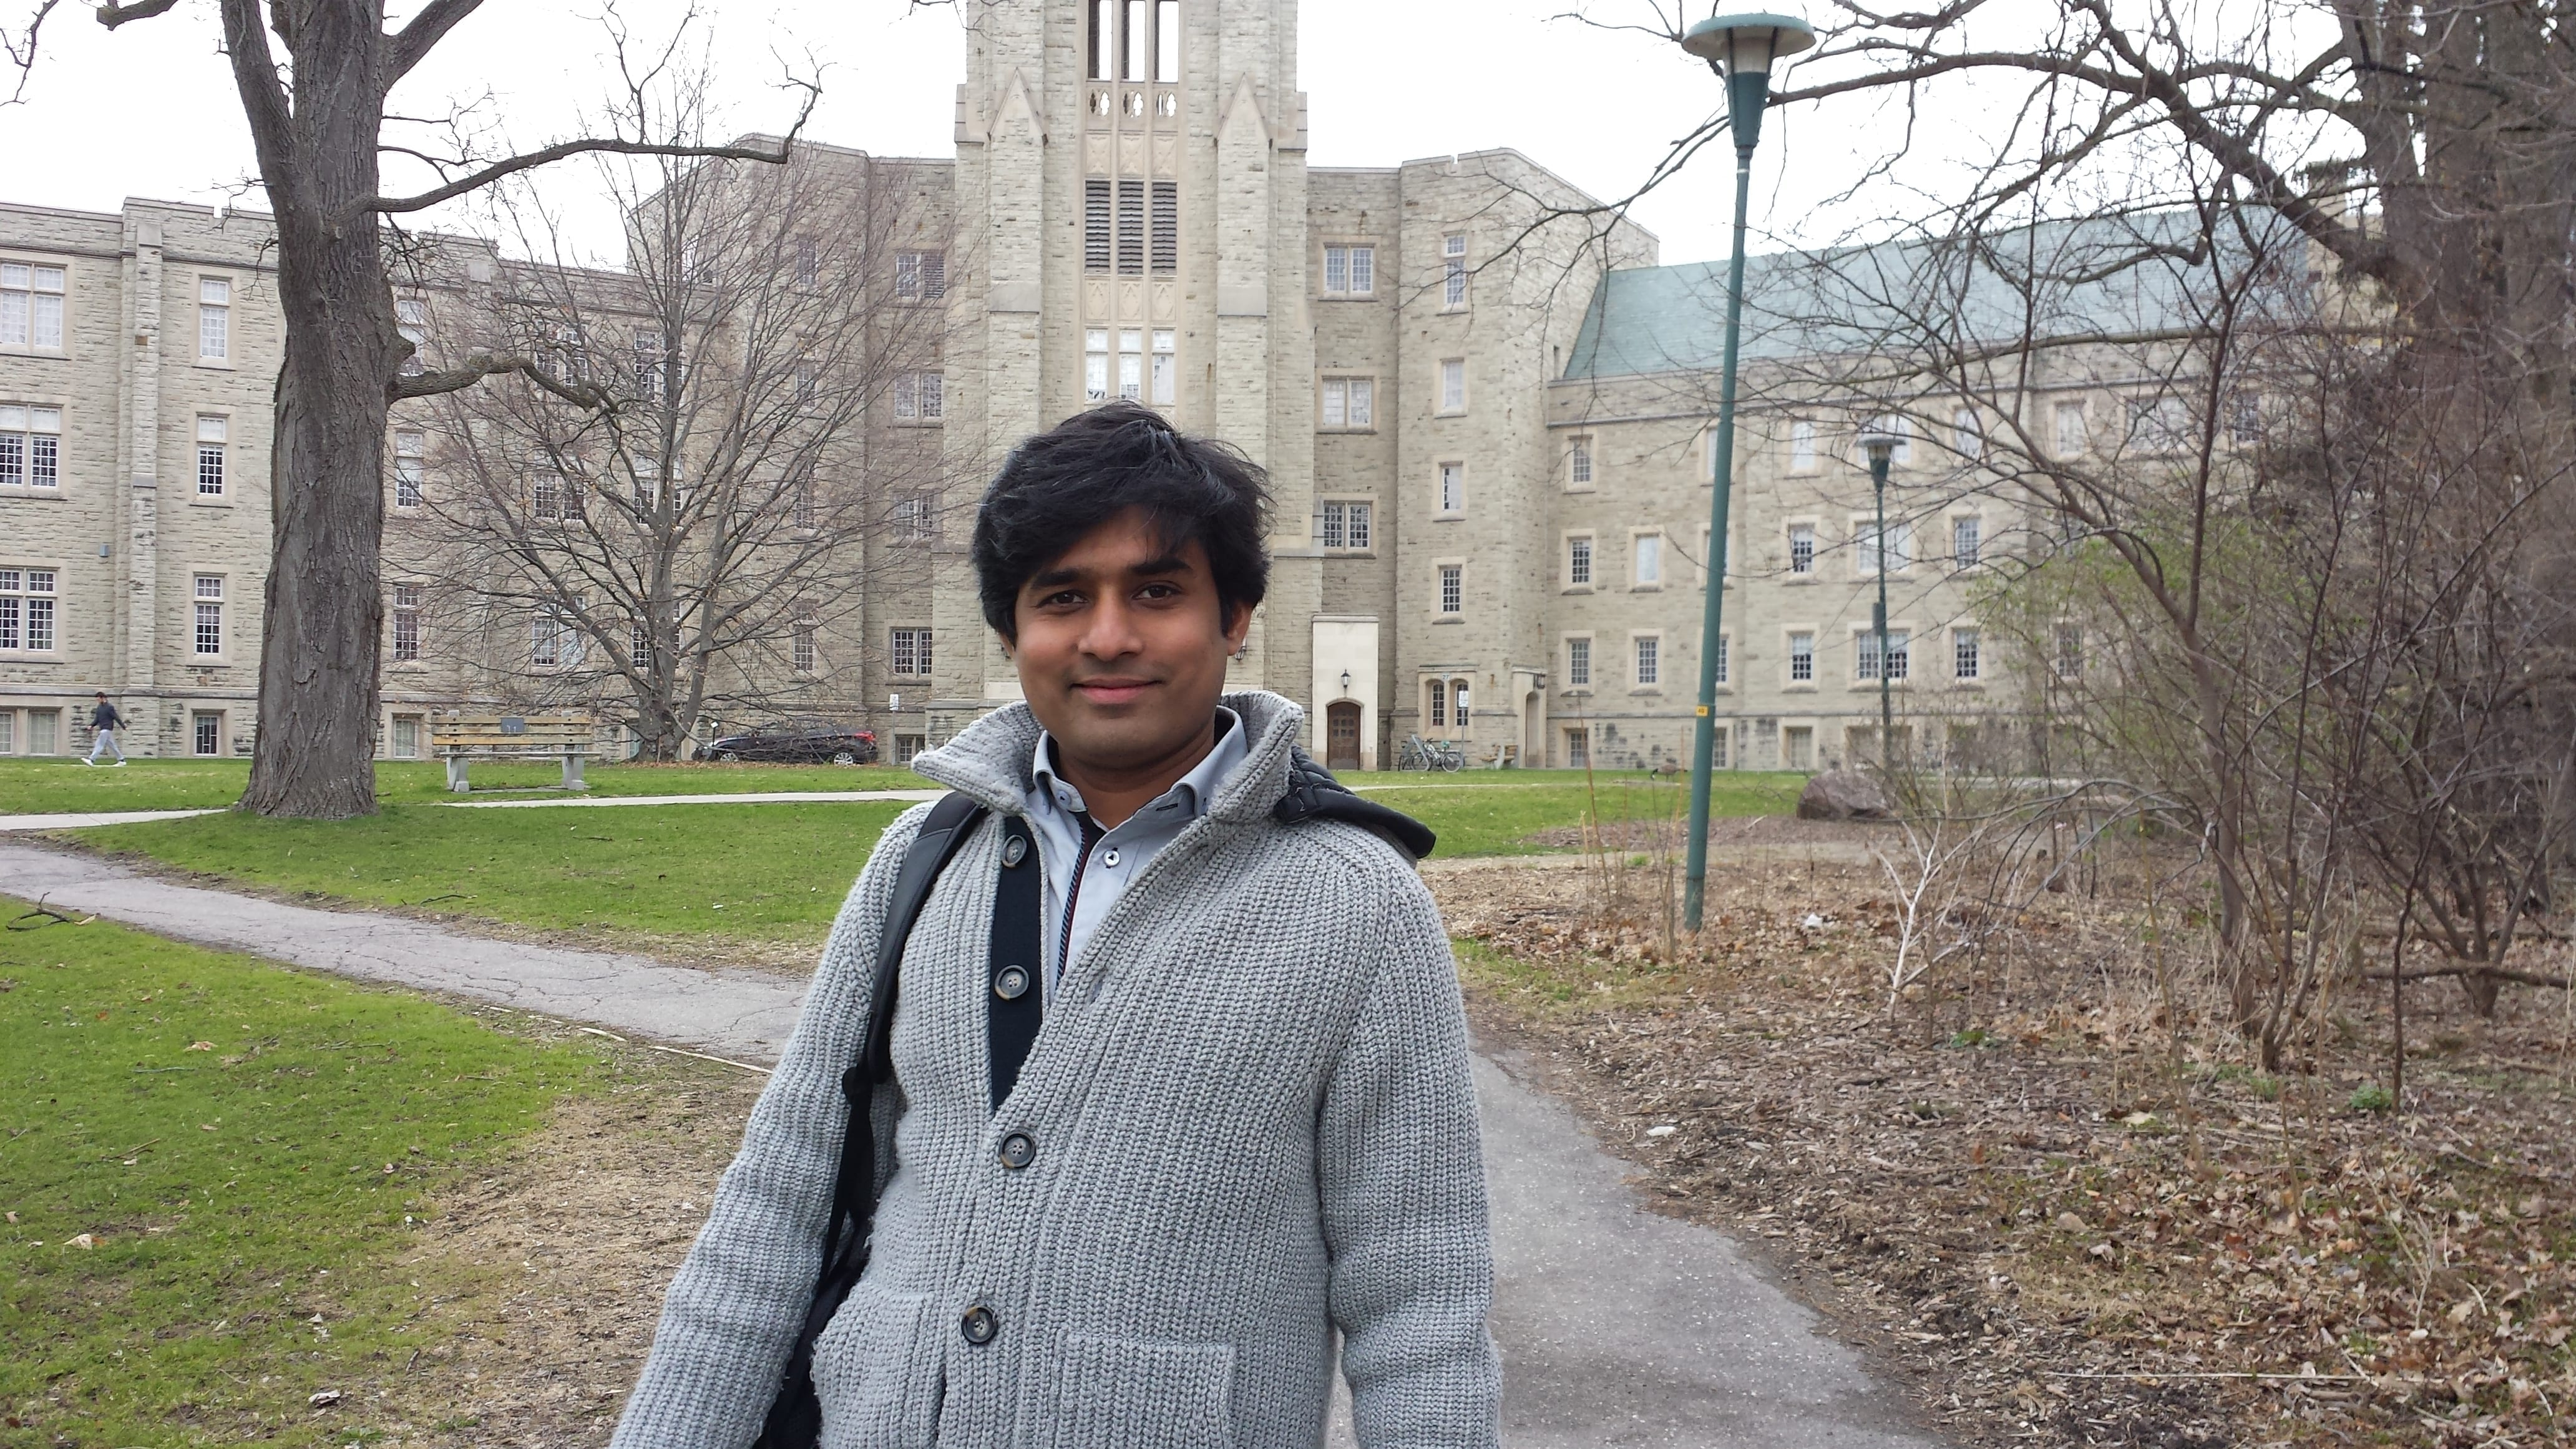 Western University Canada >> Volunteering Halal And Immigration Advice For